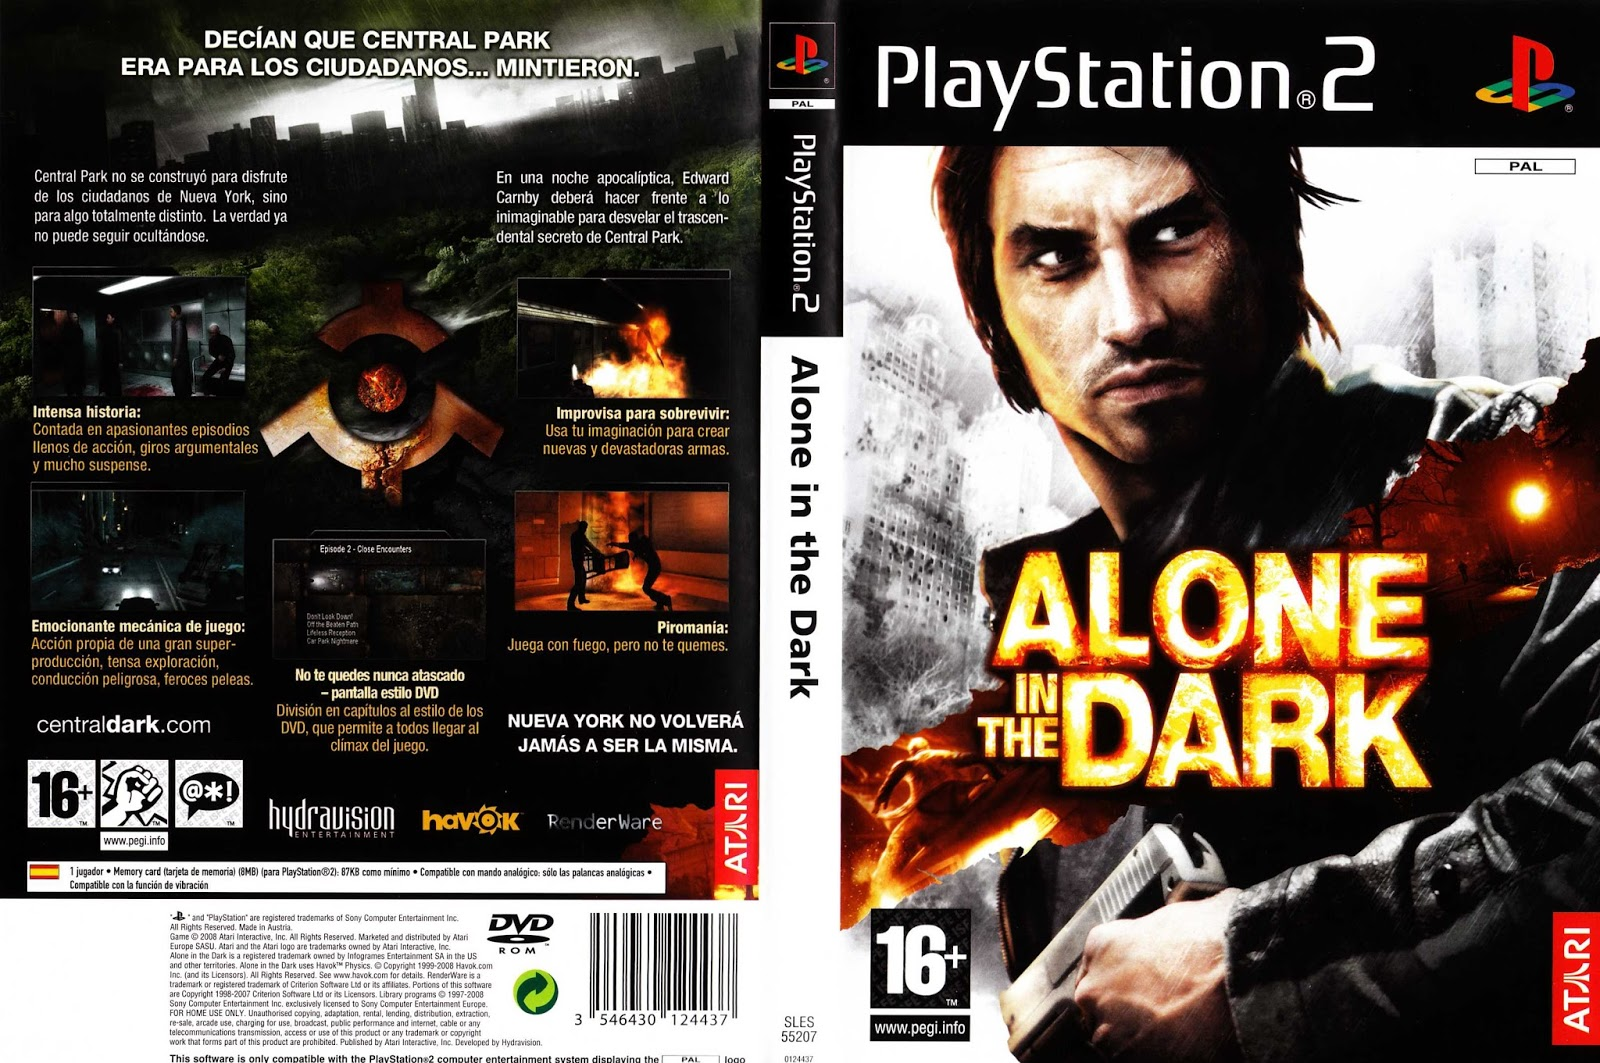 Download Game Alone In The Dark Ps2 Full Version Iso For